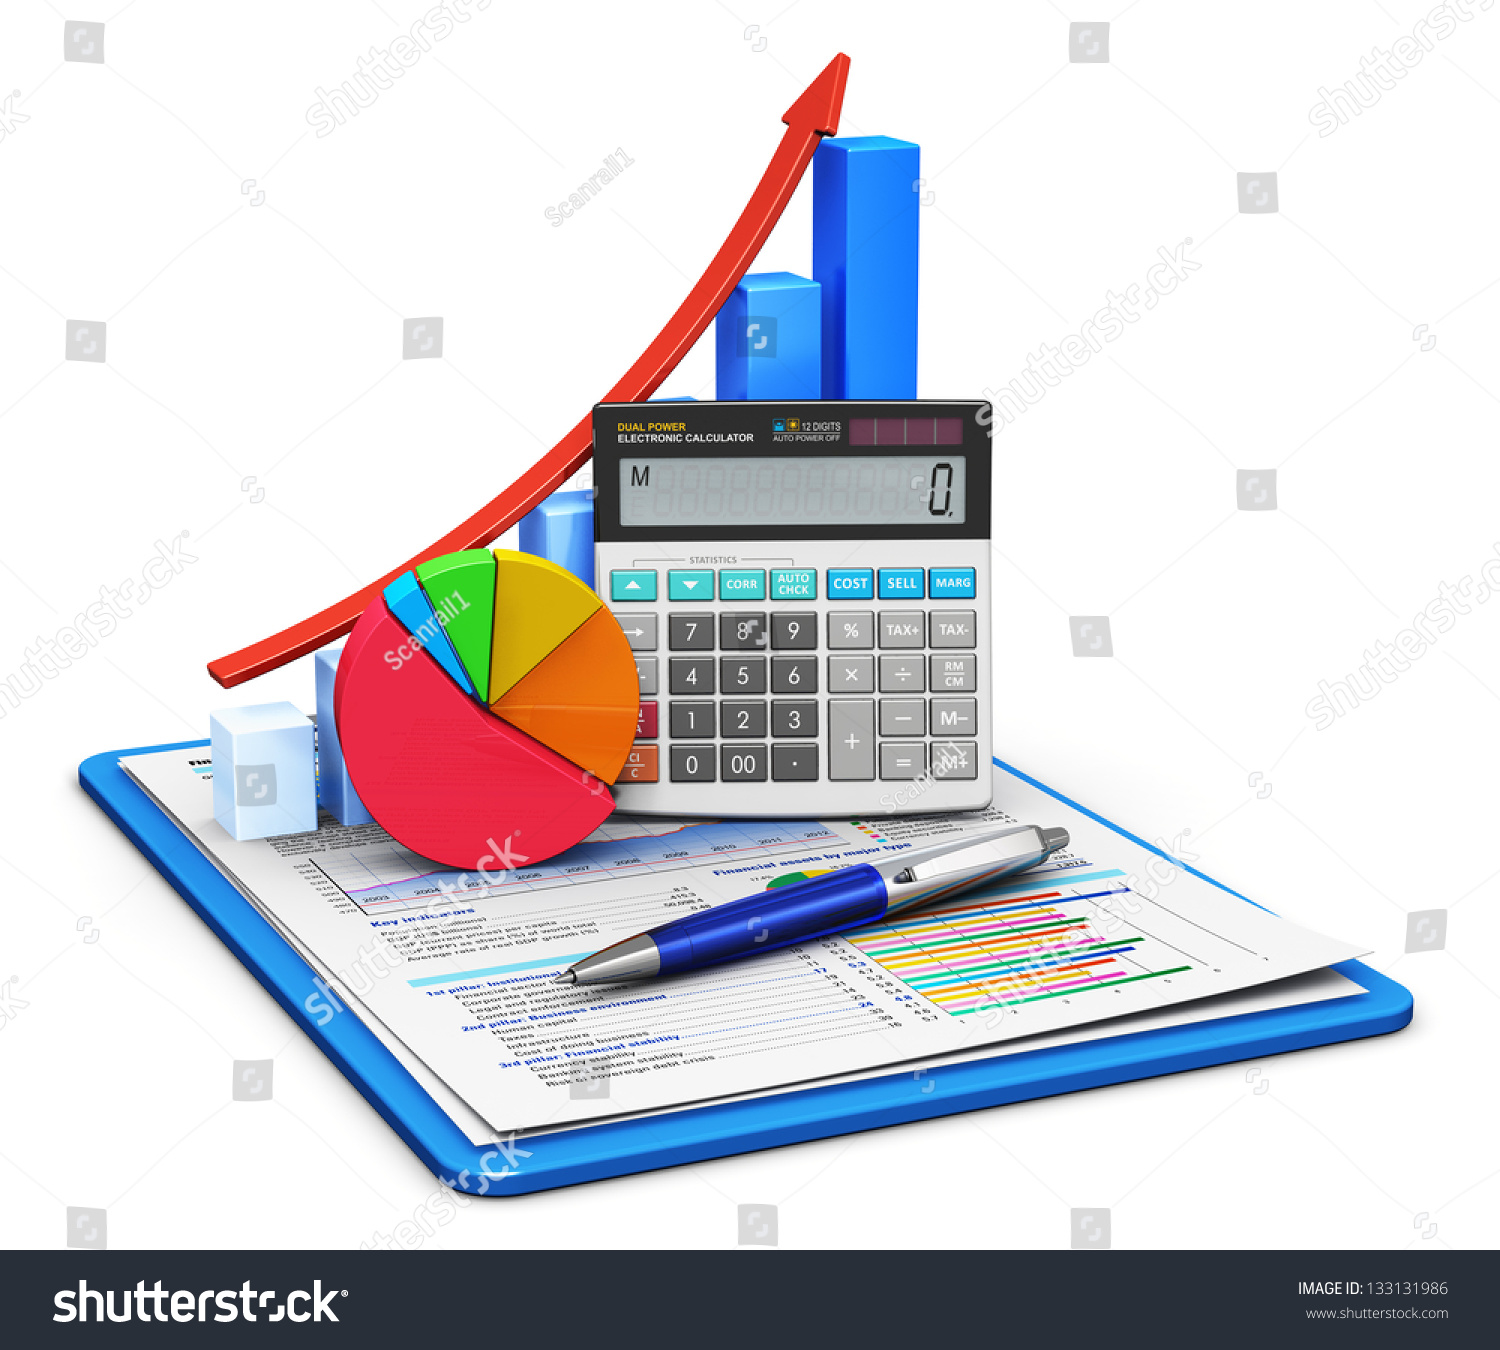 Finance: Business Finance Tax Accounting Statistics Analytic Stock